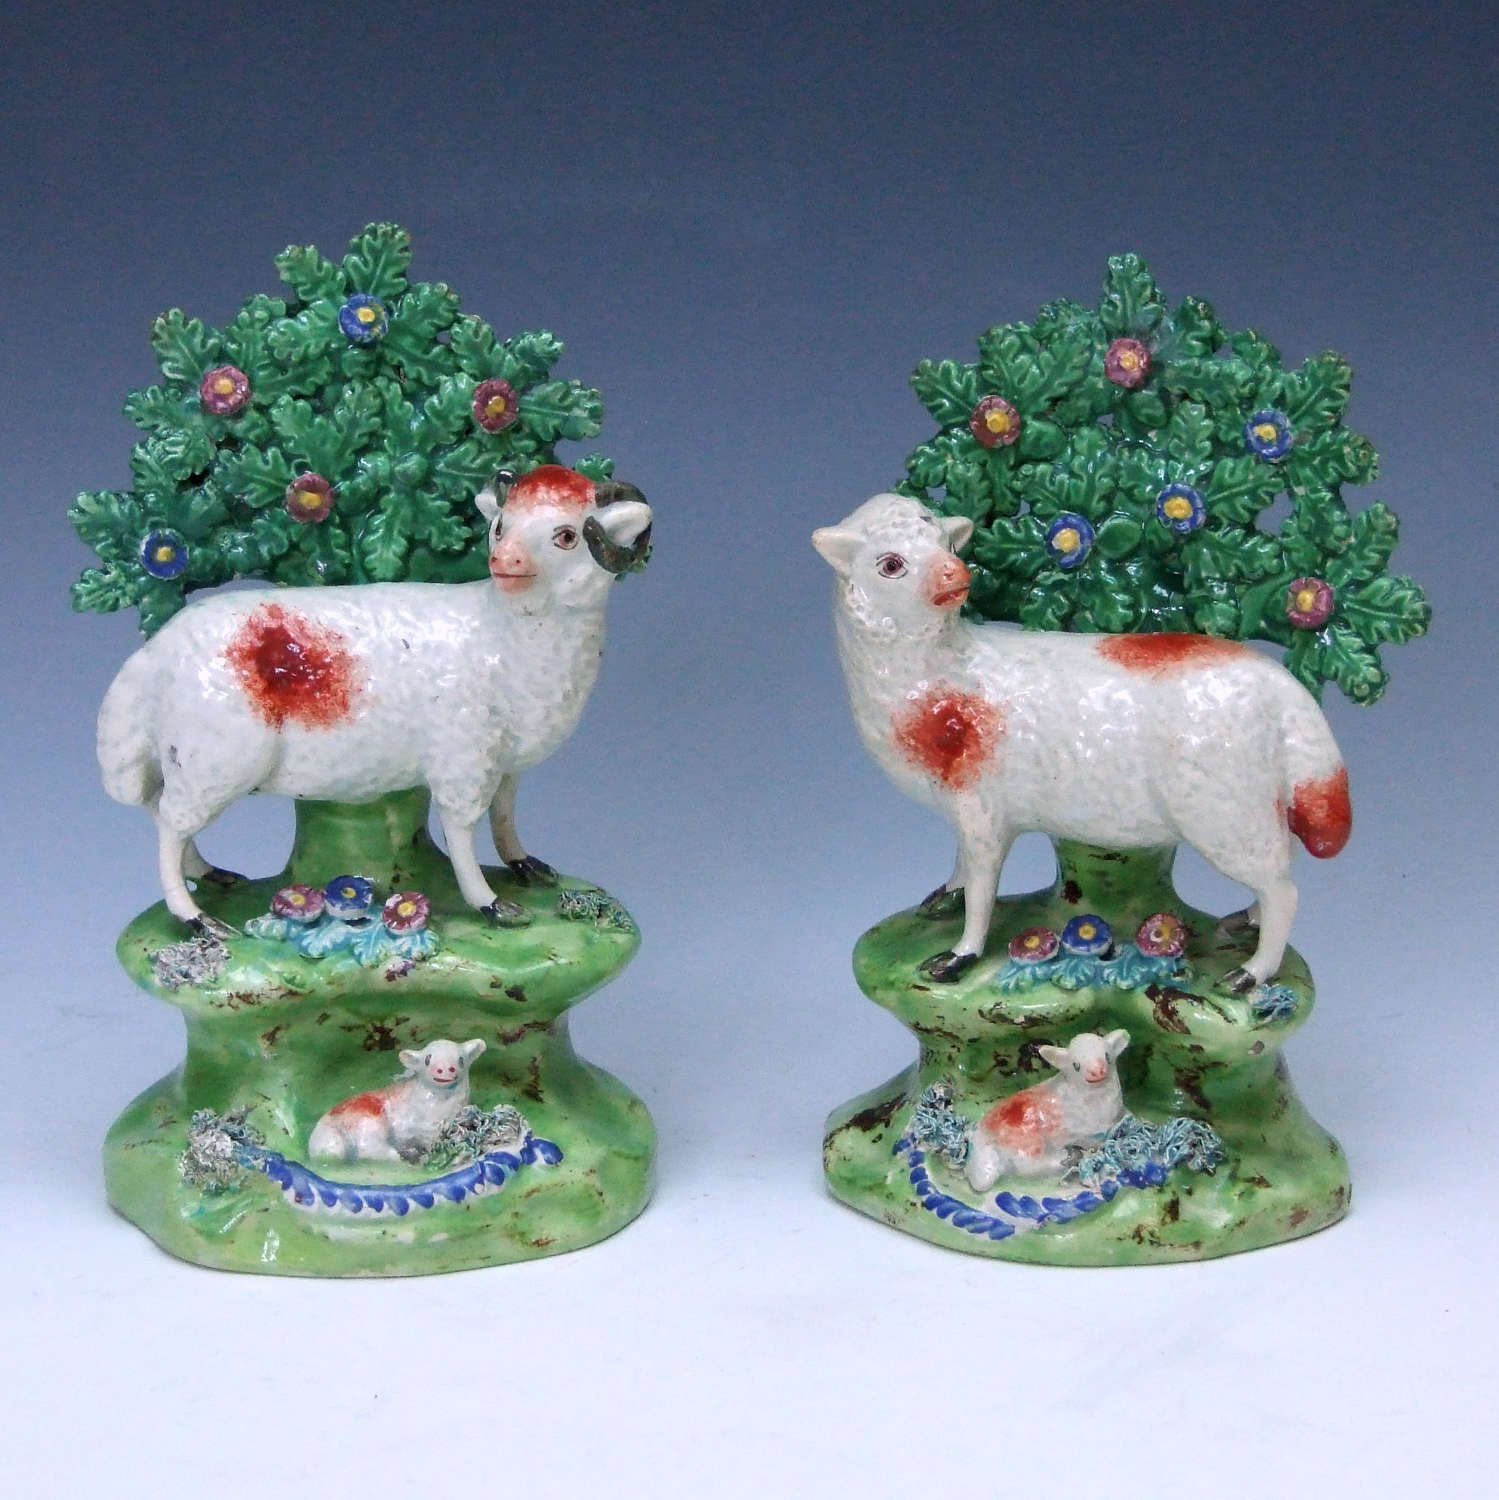 A rare pair of early 19thC pearlware Staffordshire sheep figures.